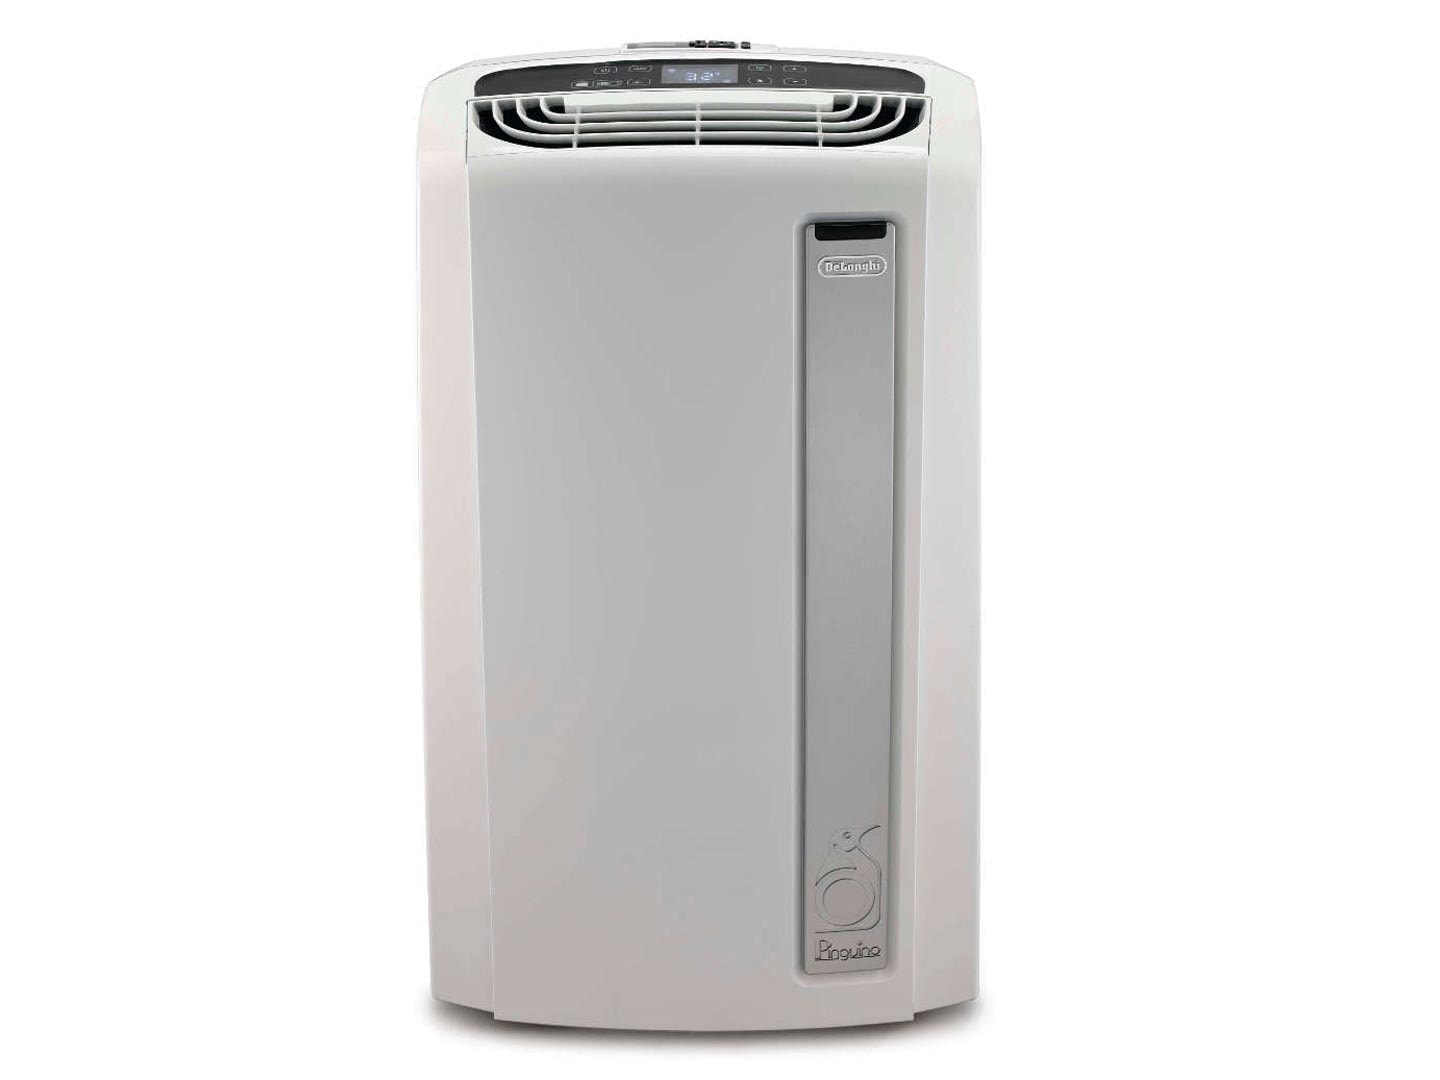 Pinguino Air-to-Air PAC AN140HPEWC Portable Air Conditioner